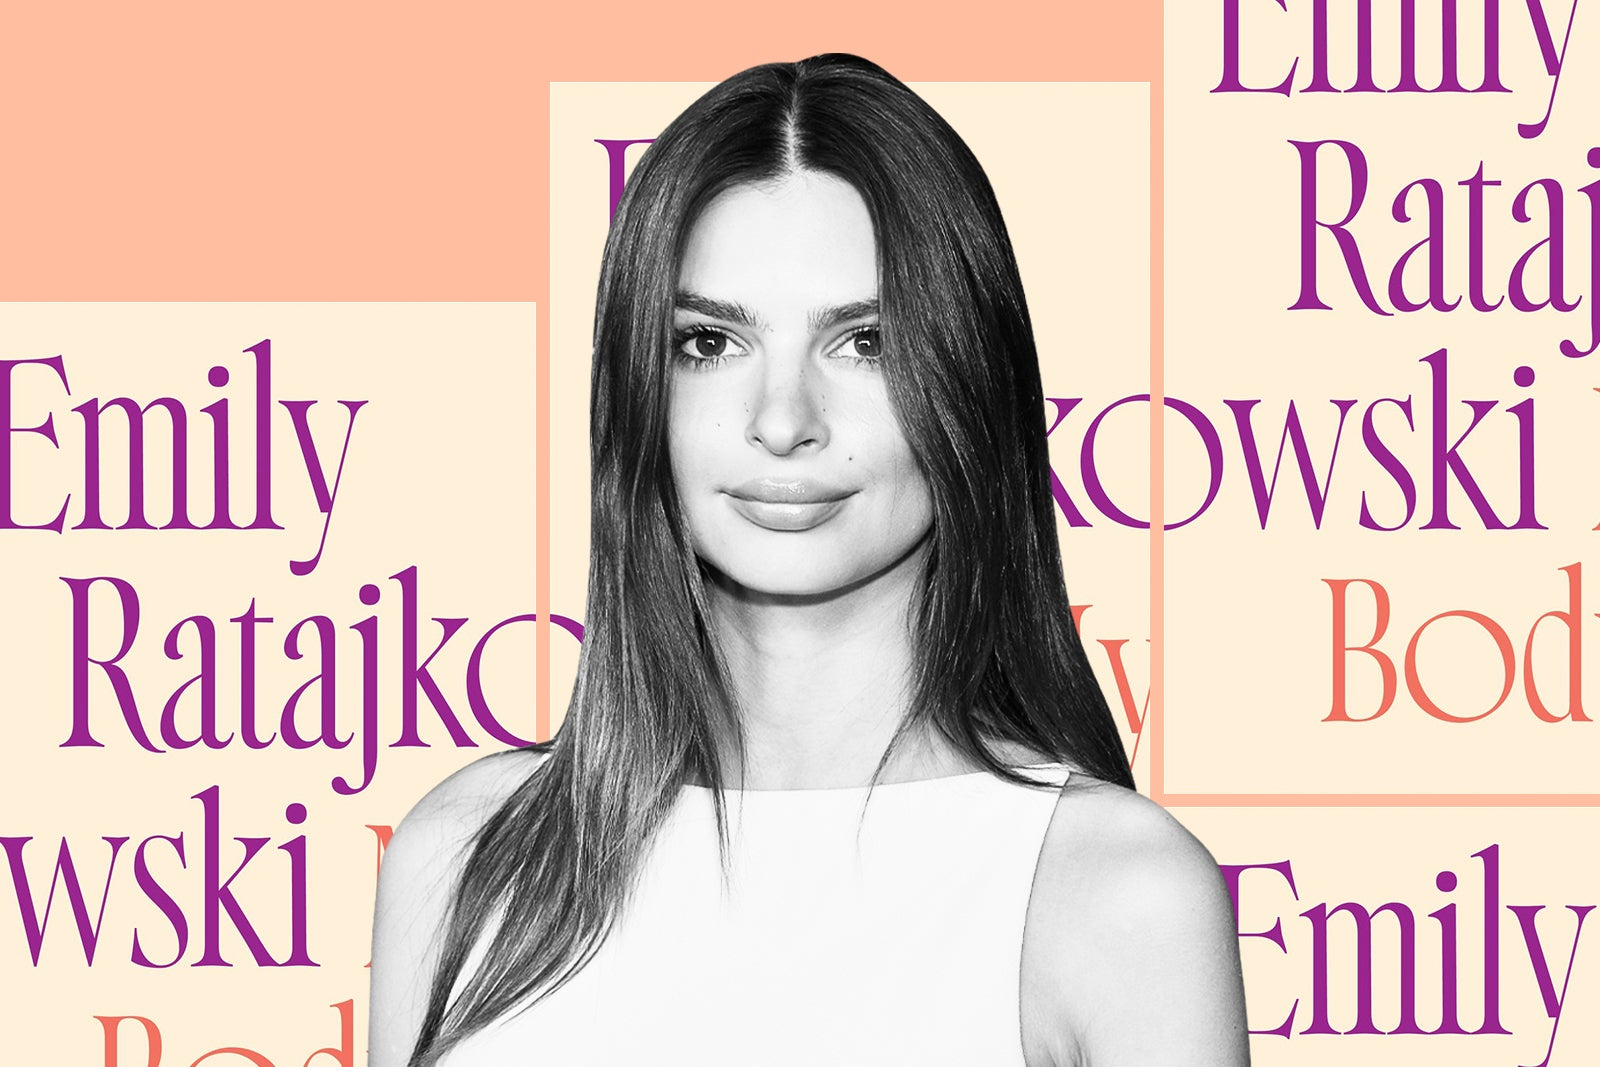 Emily Ratajkowski's New Book Wants To Speak To Every Woman. It Can't.